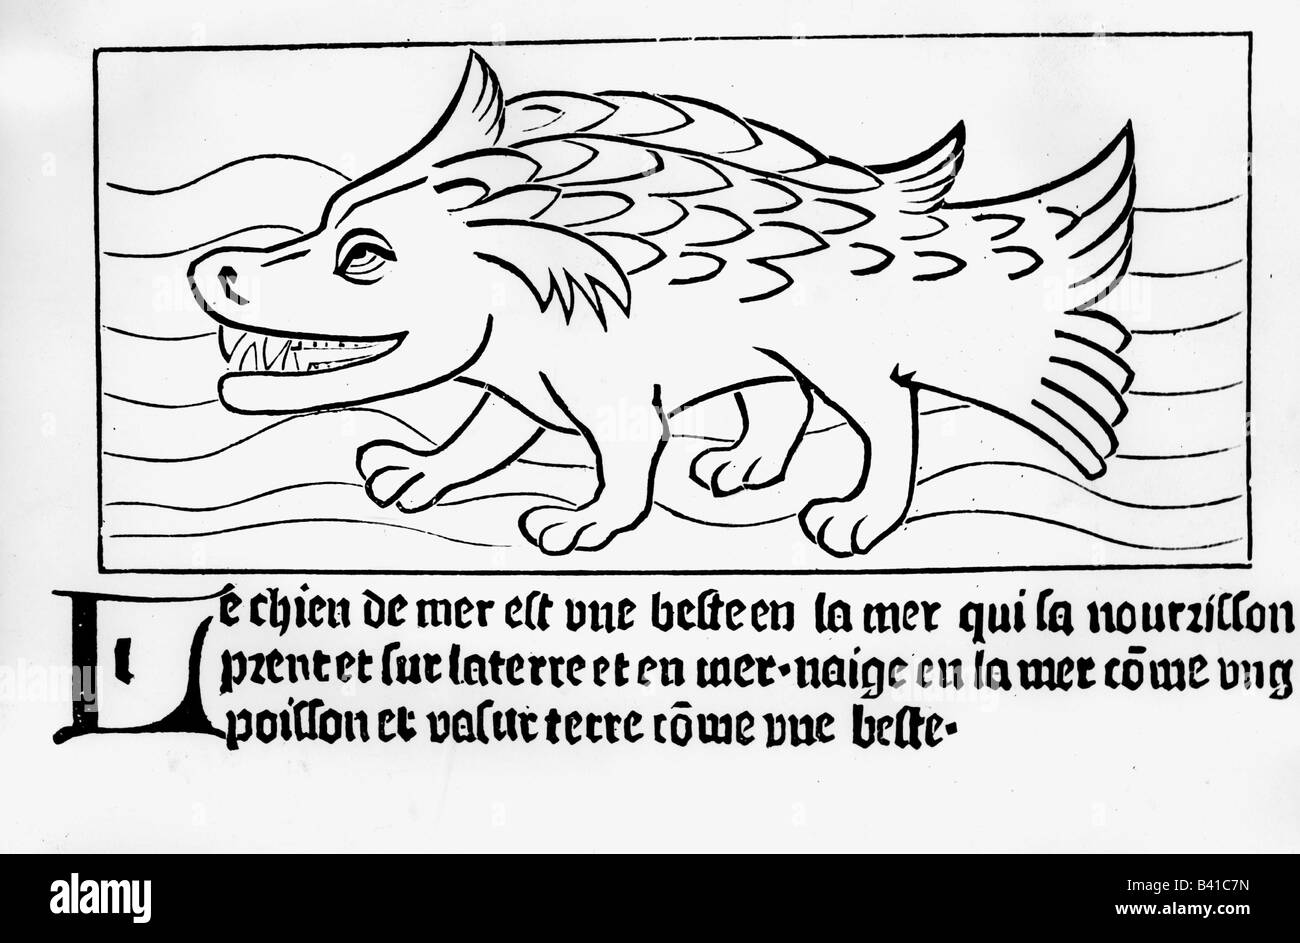 superstition, mythical creatures, 'sea dog', woodcut, 'Dyalogue des creatures', translation by Colard - Stock Image